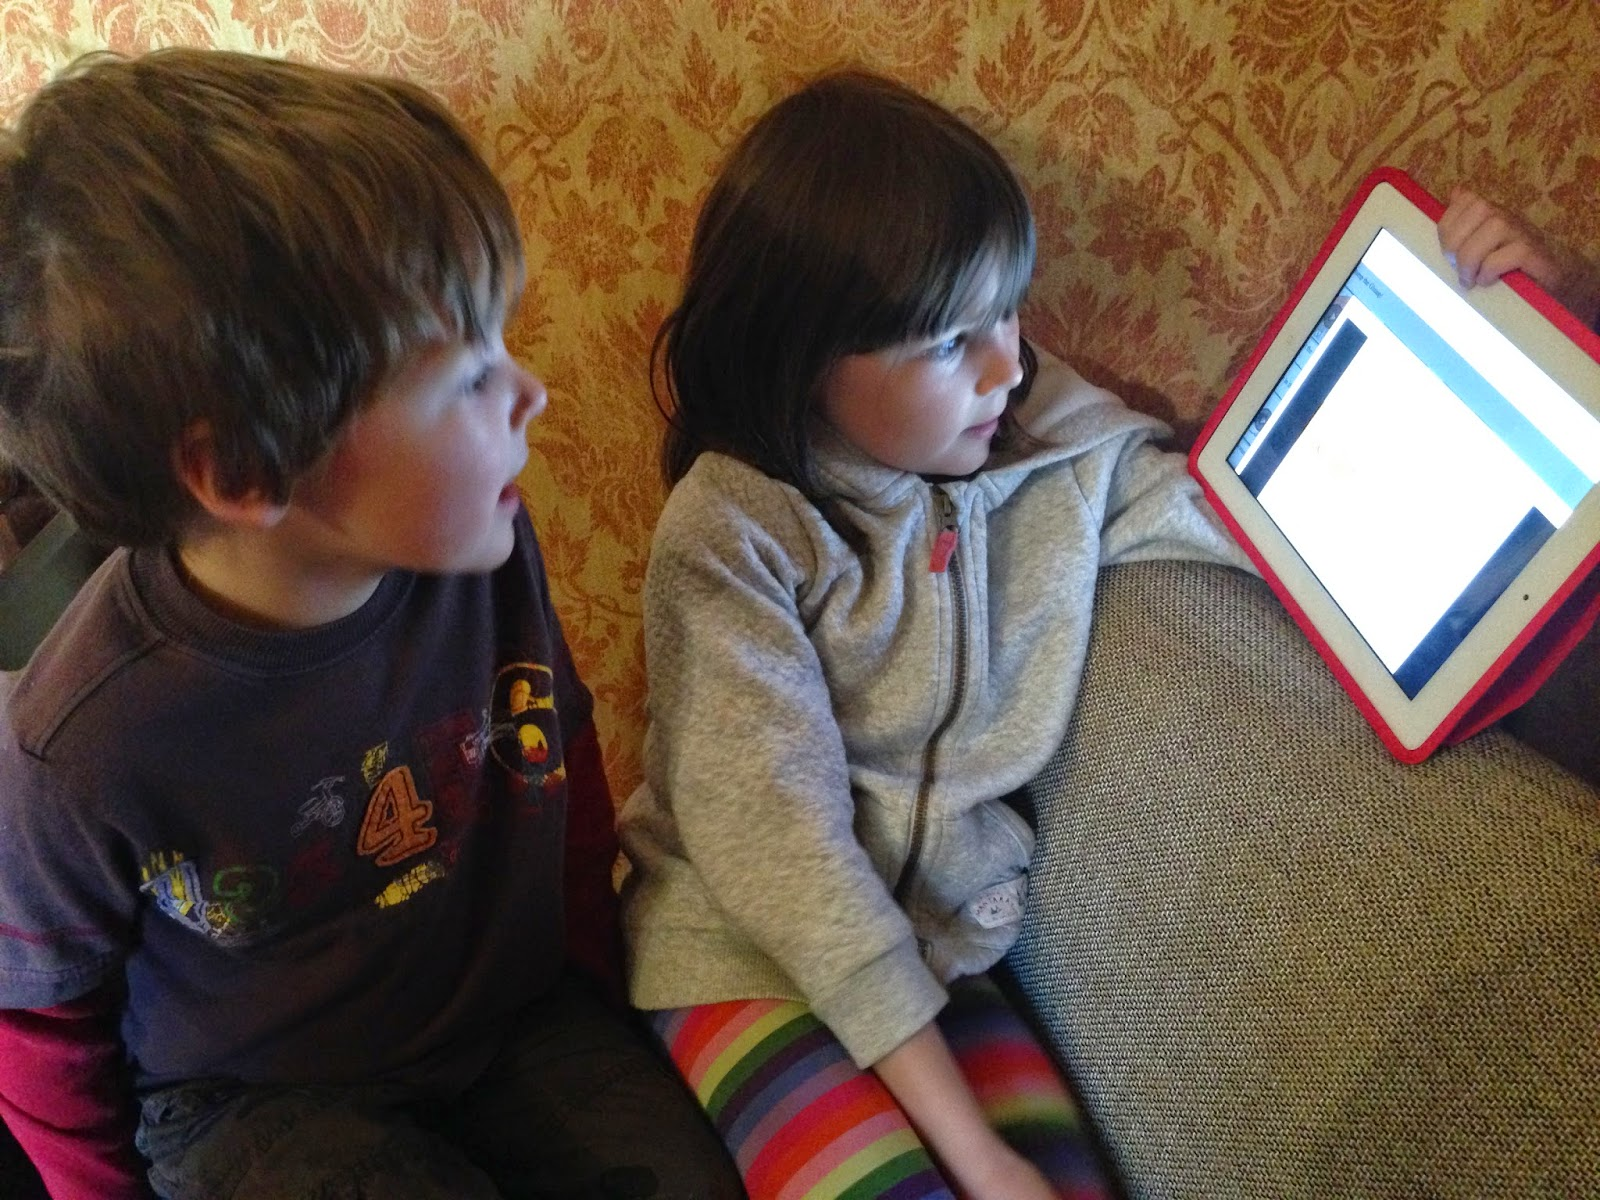 Siblings with ipad